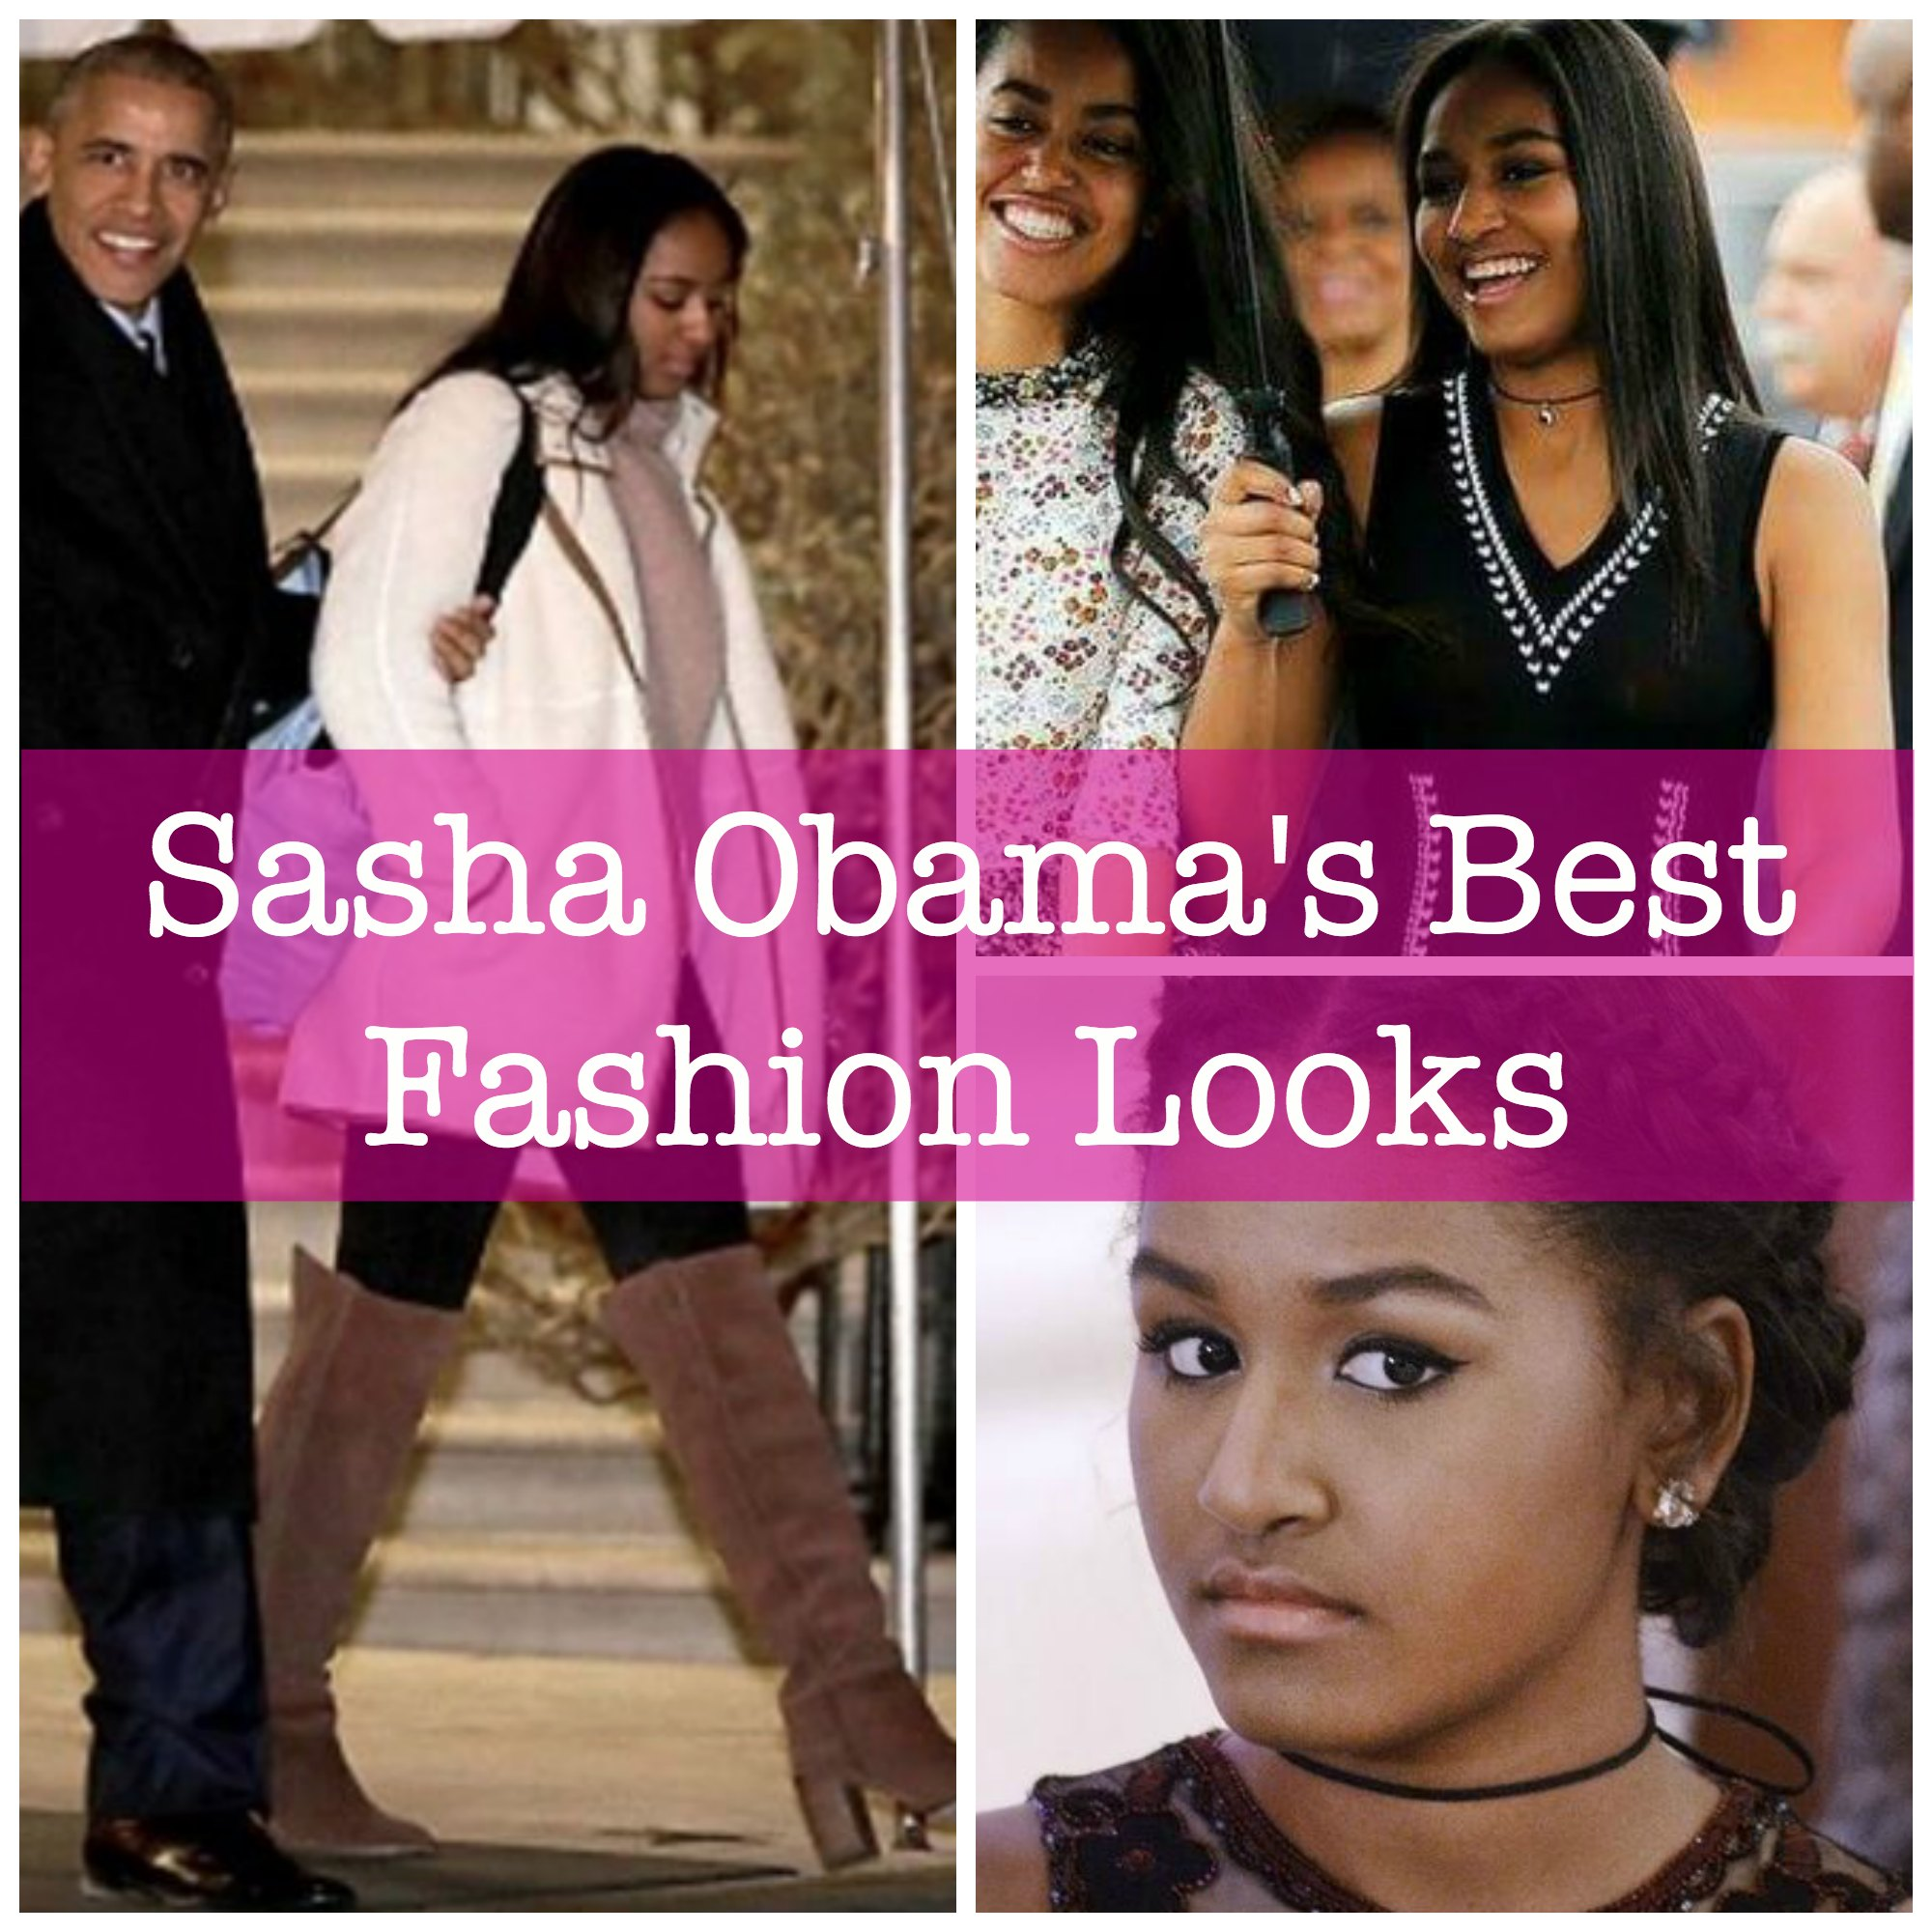 Sasha Obama's Best Fashion Looks